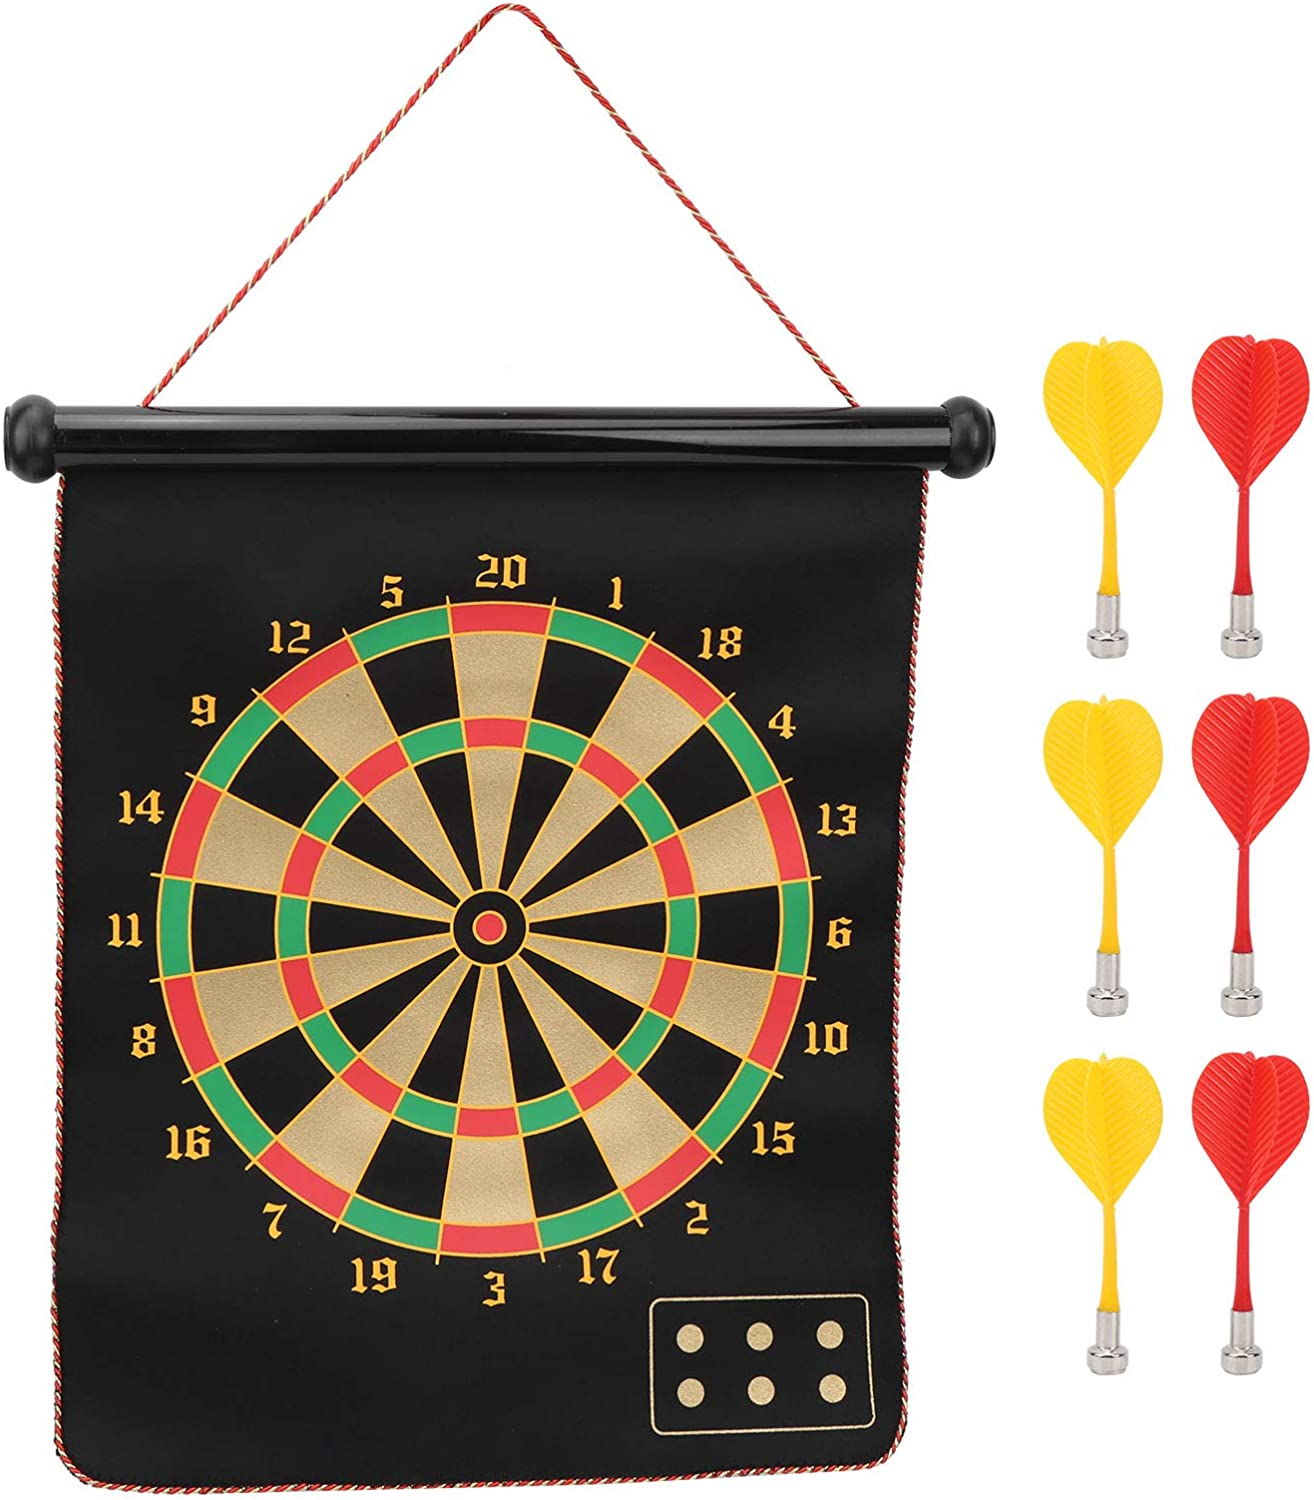 Max 55% OFF Dart Board OFFicial Toy Safety Family Portable for